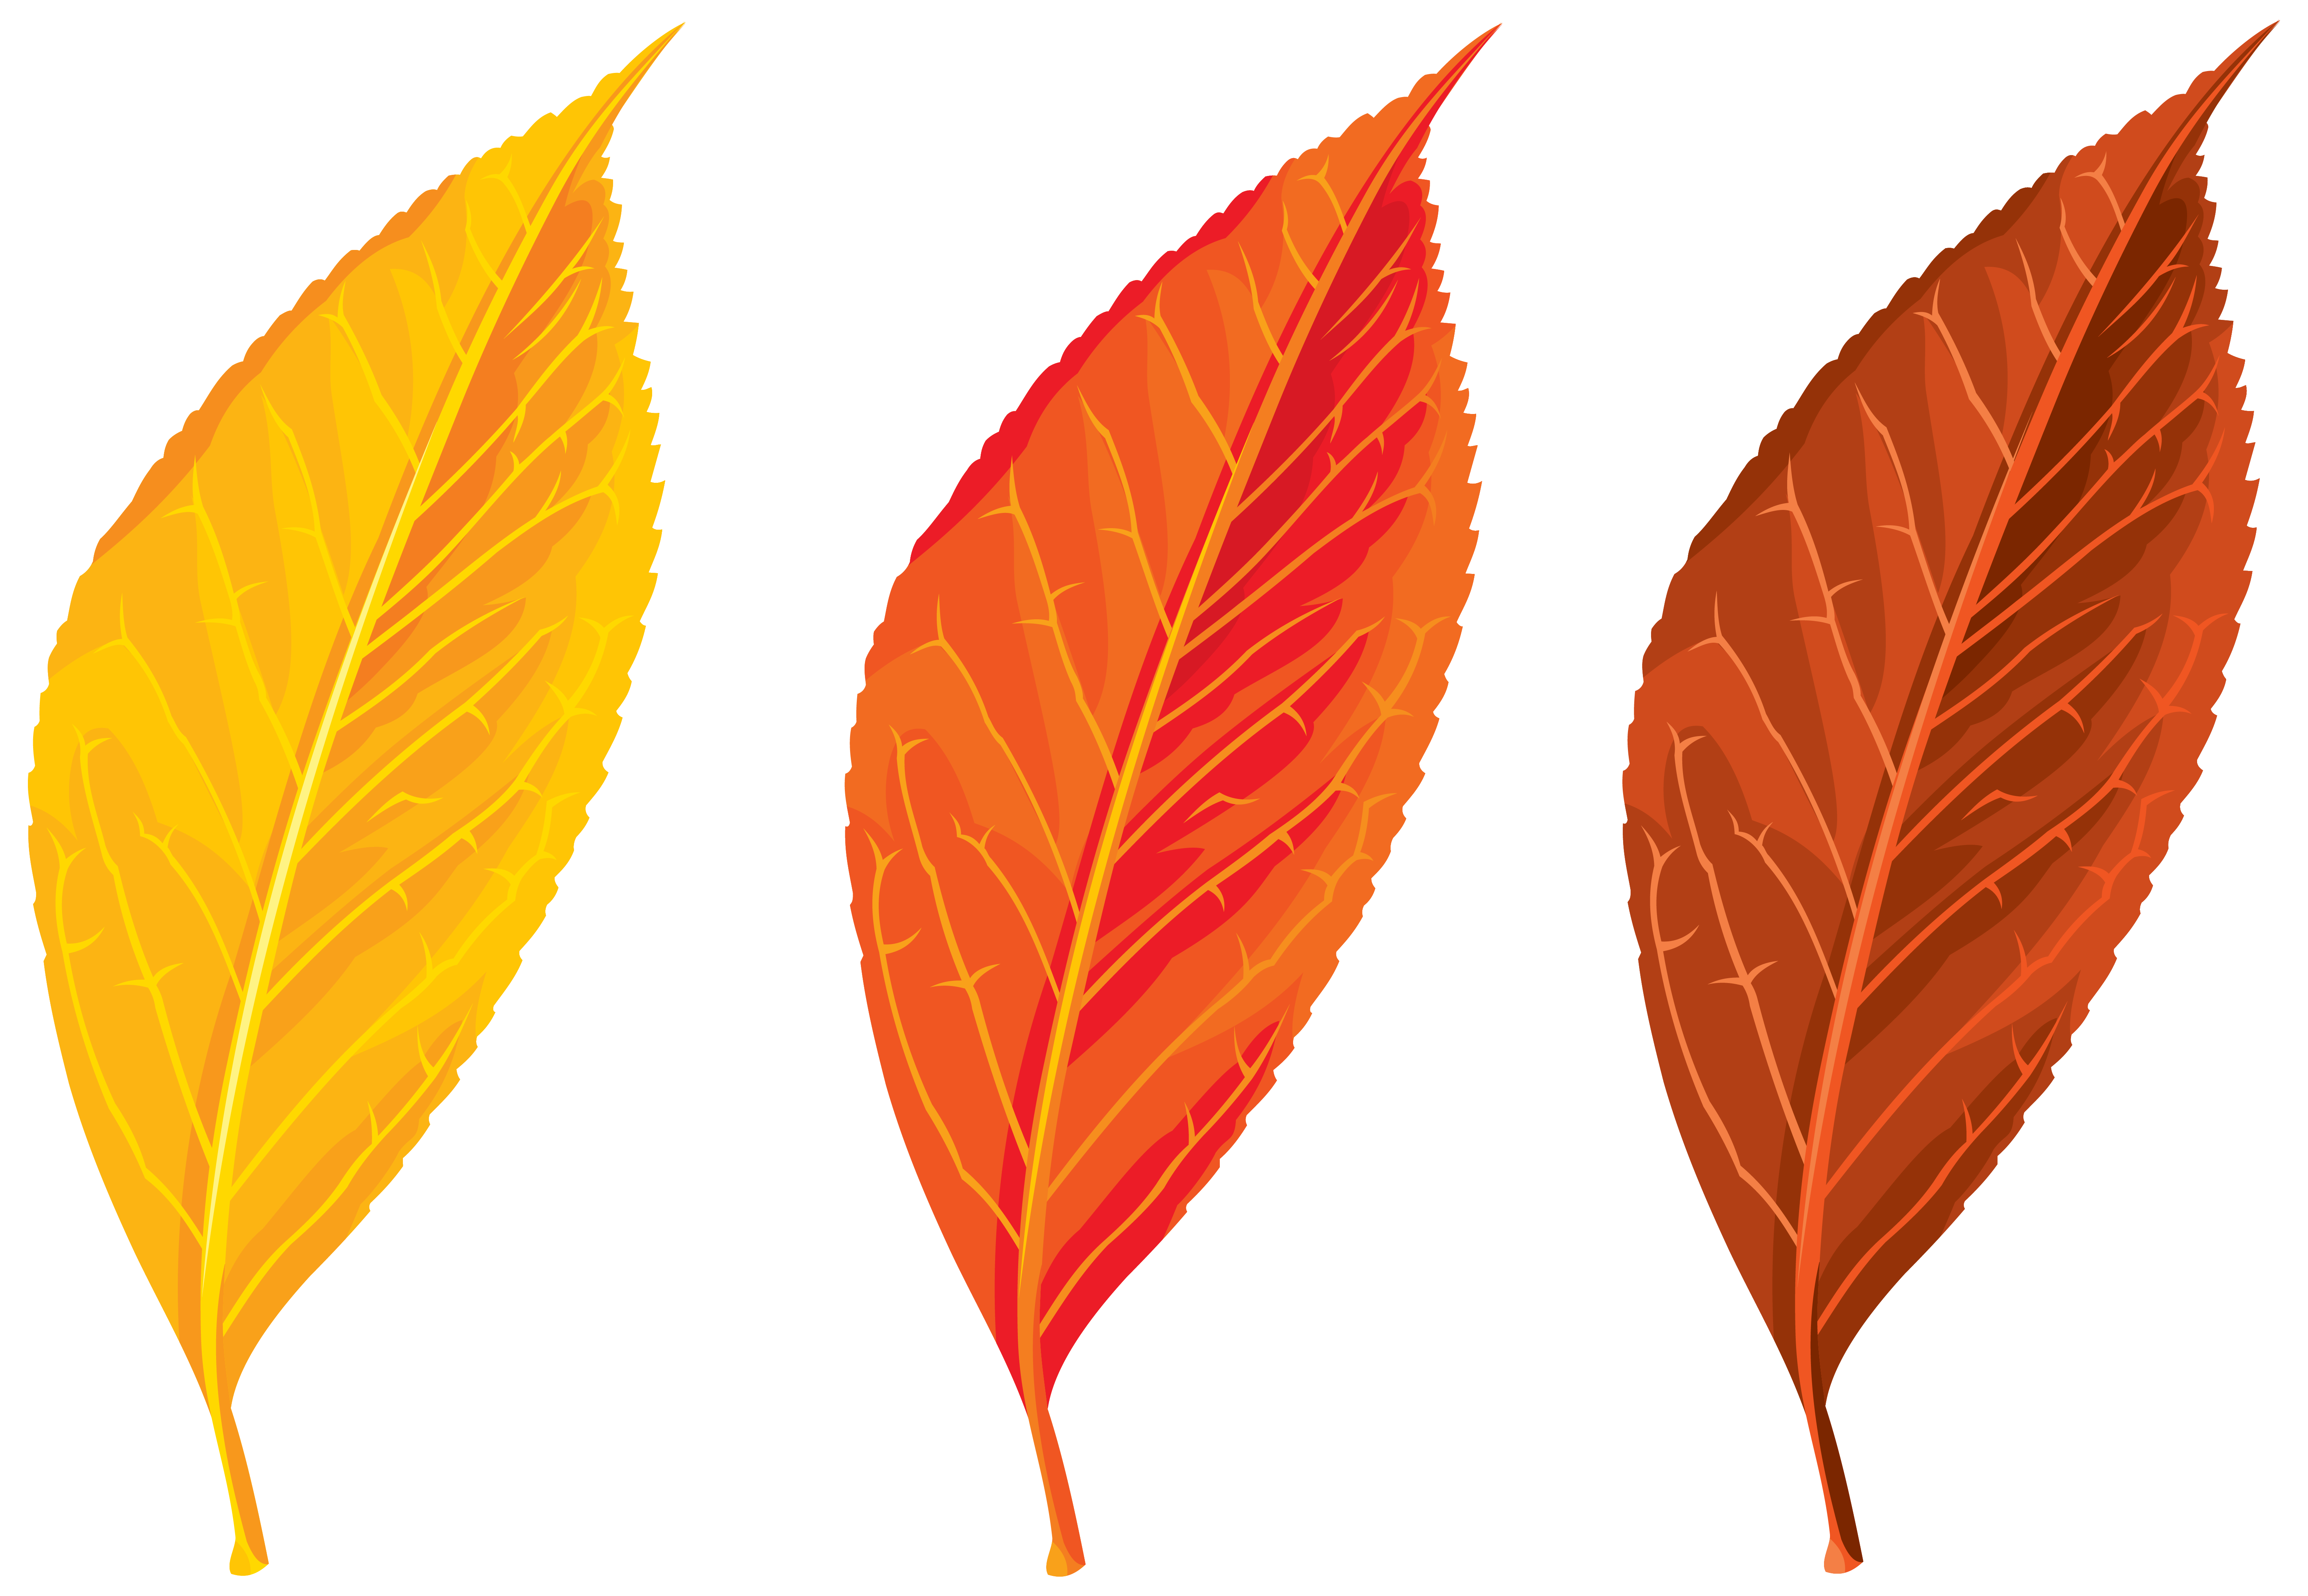 Autumn, Spring, Winter, Seasons, Leaf, Clip Art